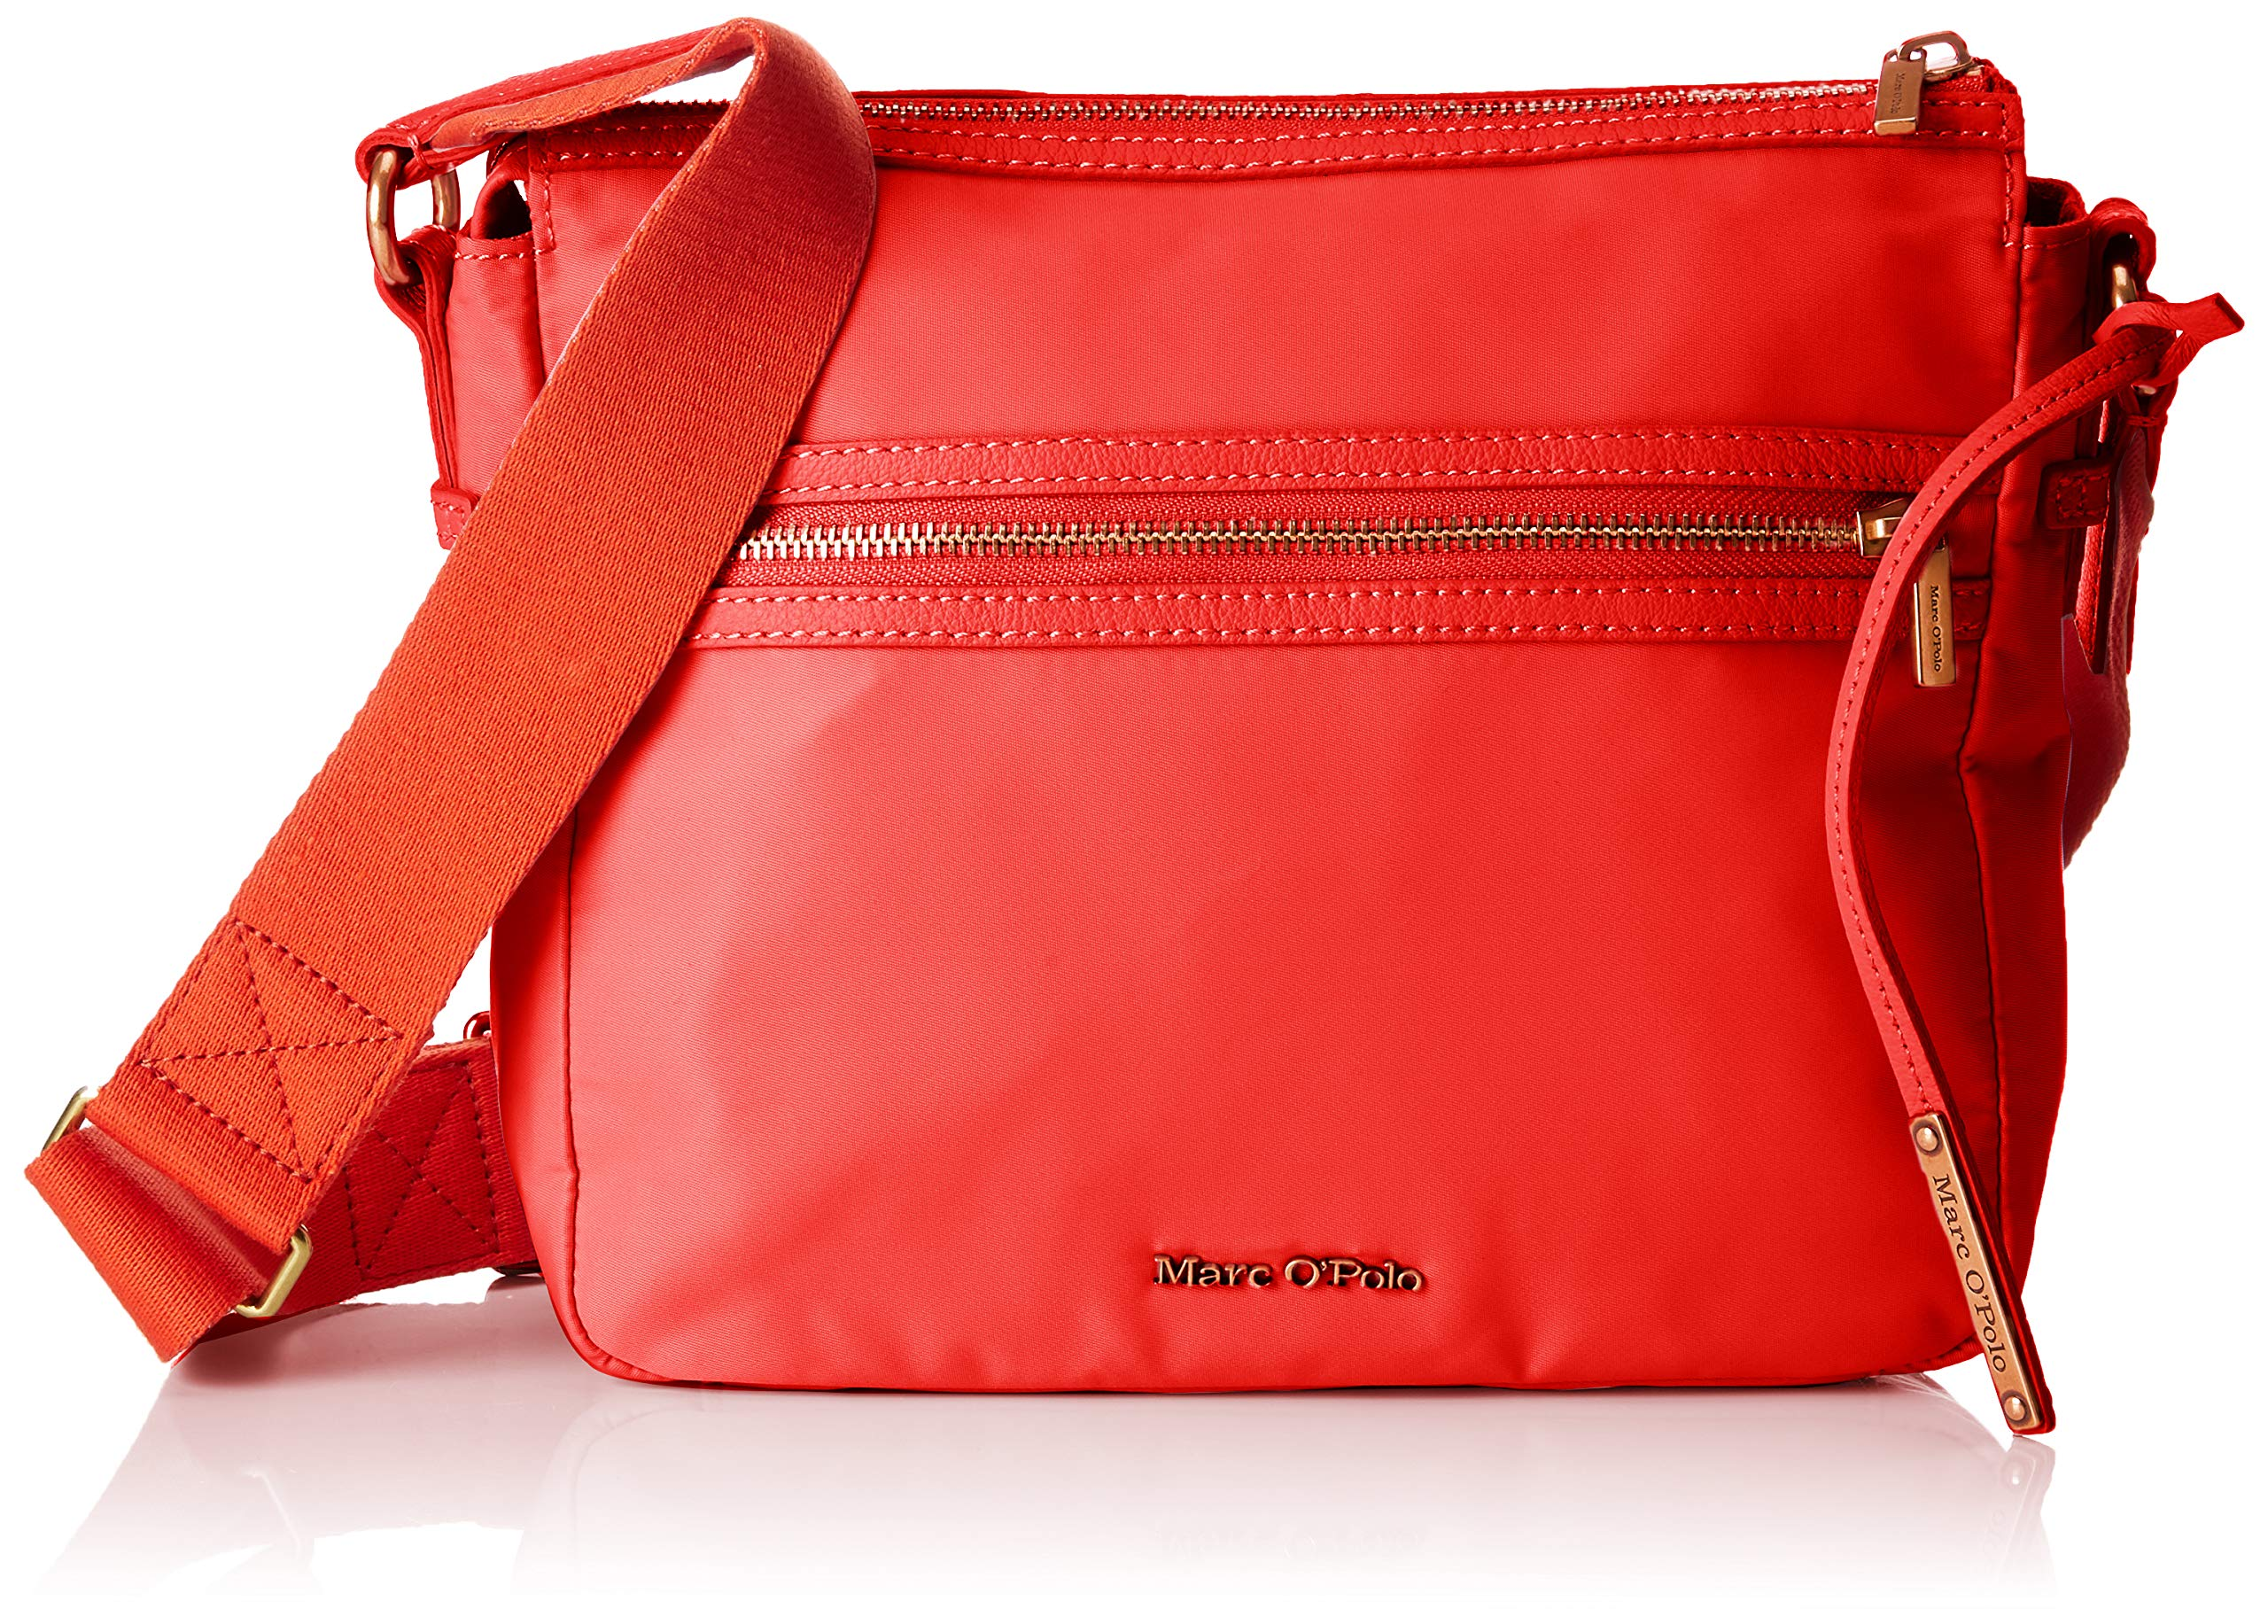 O'polo Bandoulière Marc Red ThereseSacs FemmeRougepomegranate qVzGMjSULp